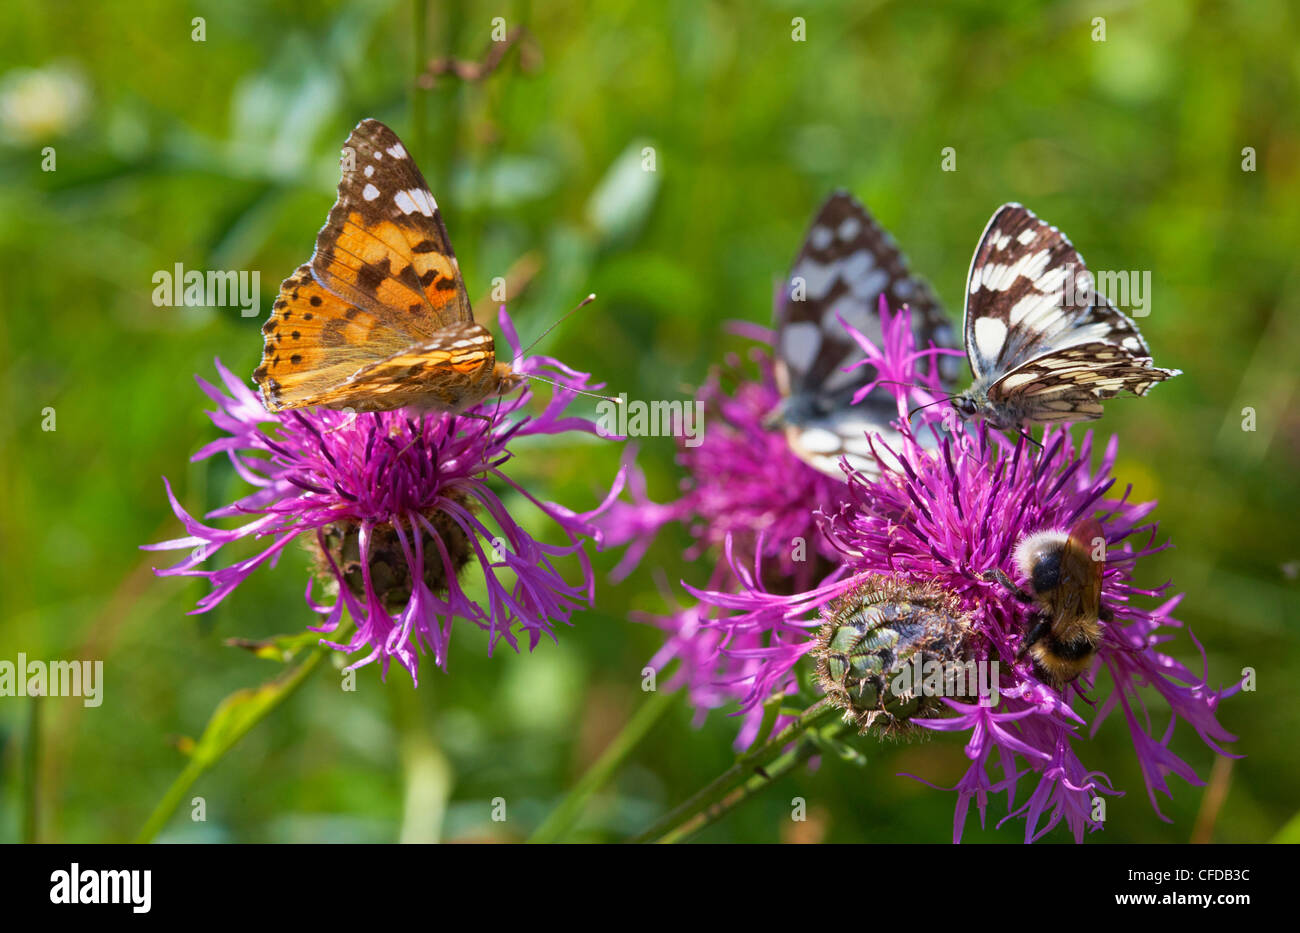 Flower with butterfly near Rust in the Taubergiessen, Spring, Breisgau, Ortenau, Baden Wuerttemberg, Germany, Europe - Stock Image